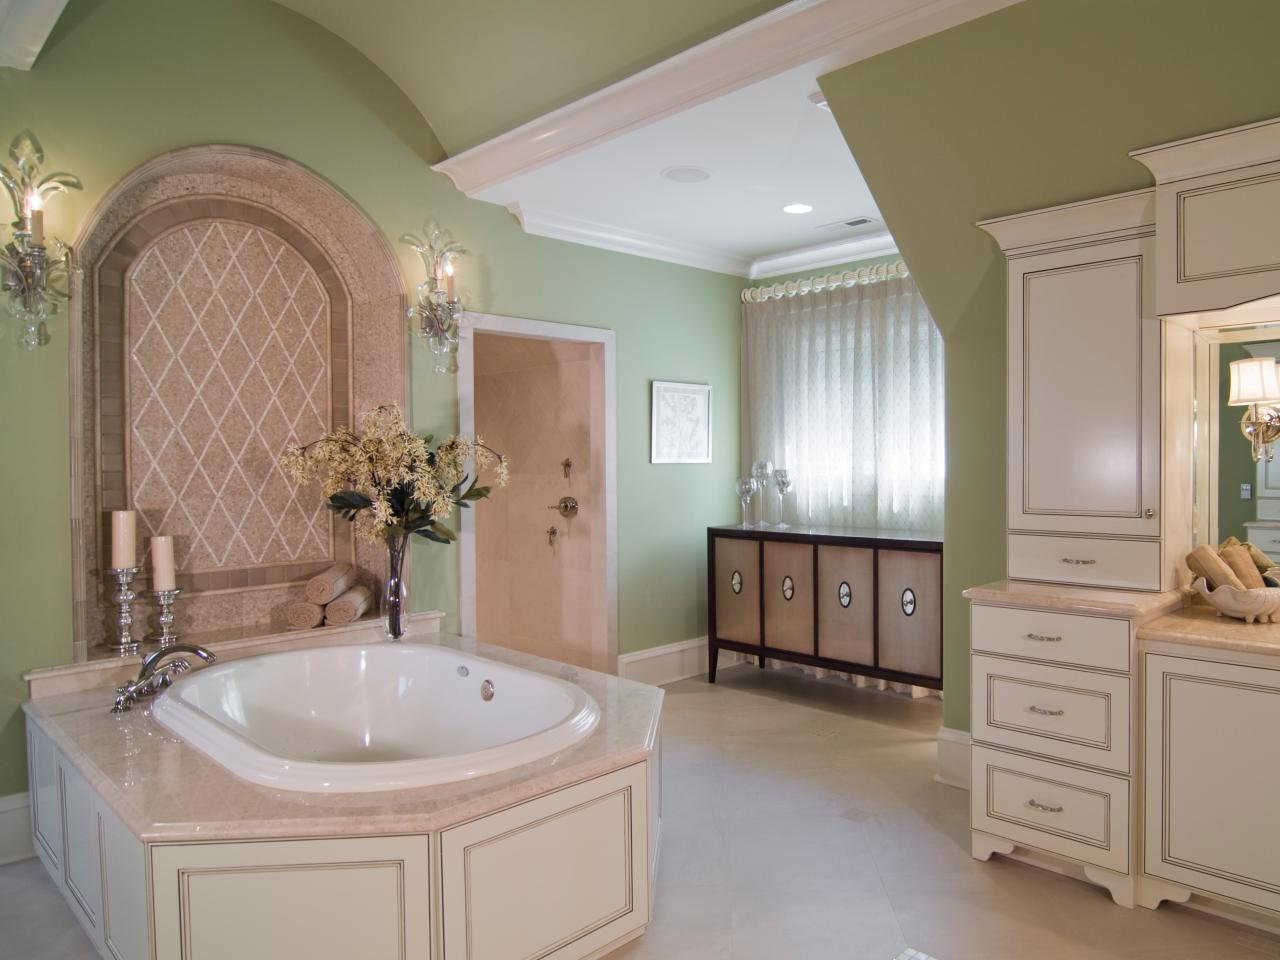 Big master bathroom ideas - Lavish Interior Master Bathroom Designs